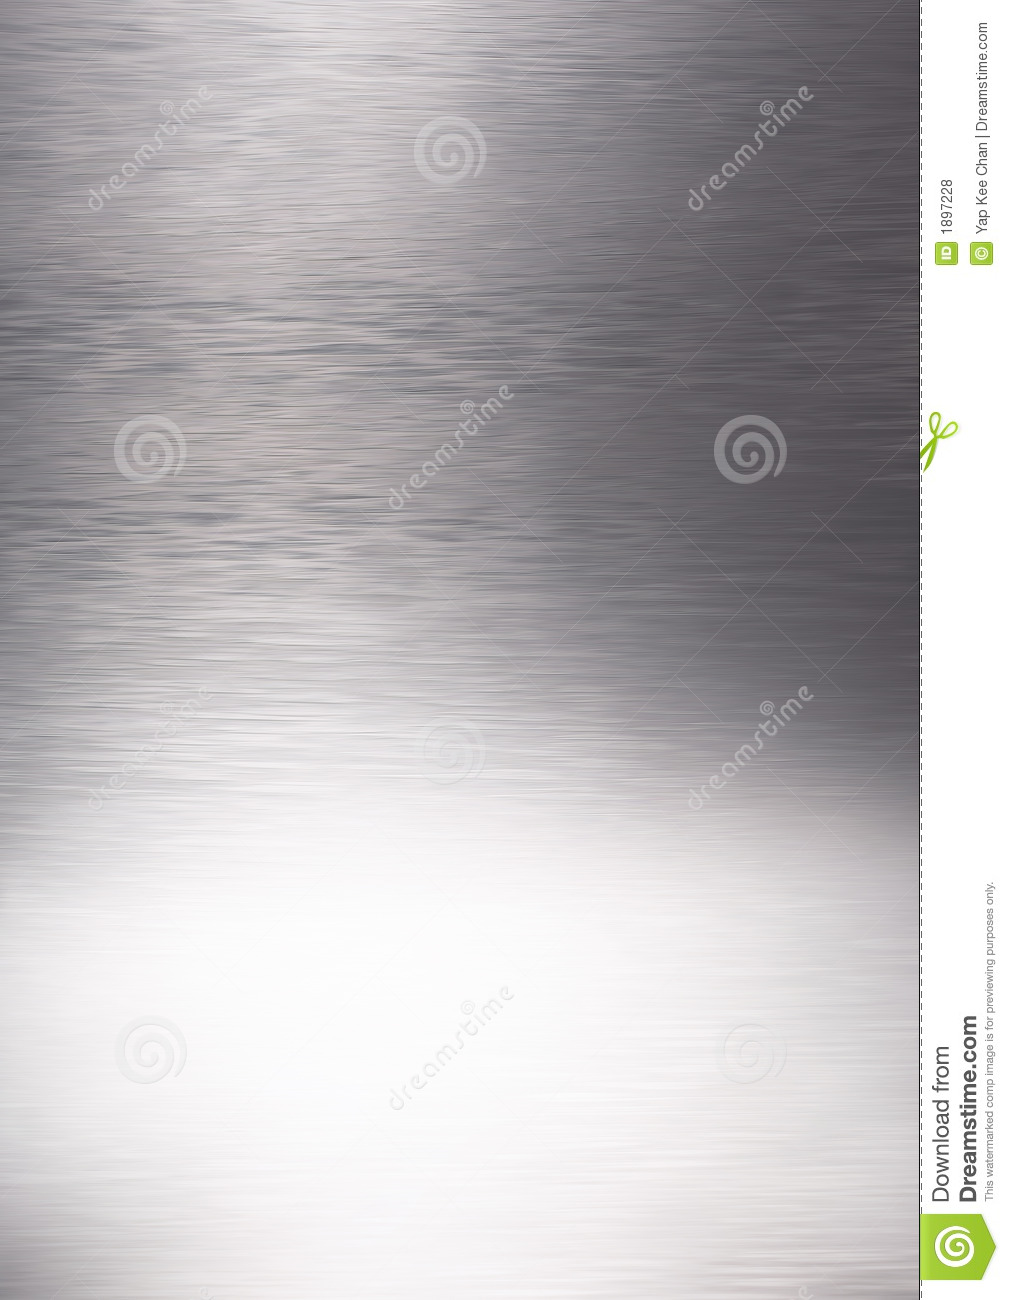 Stainless Steel Metal Texture Royalty Free Stock Photos - Image ...